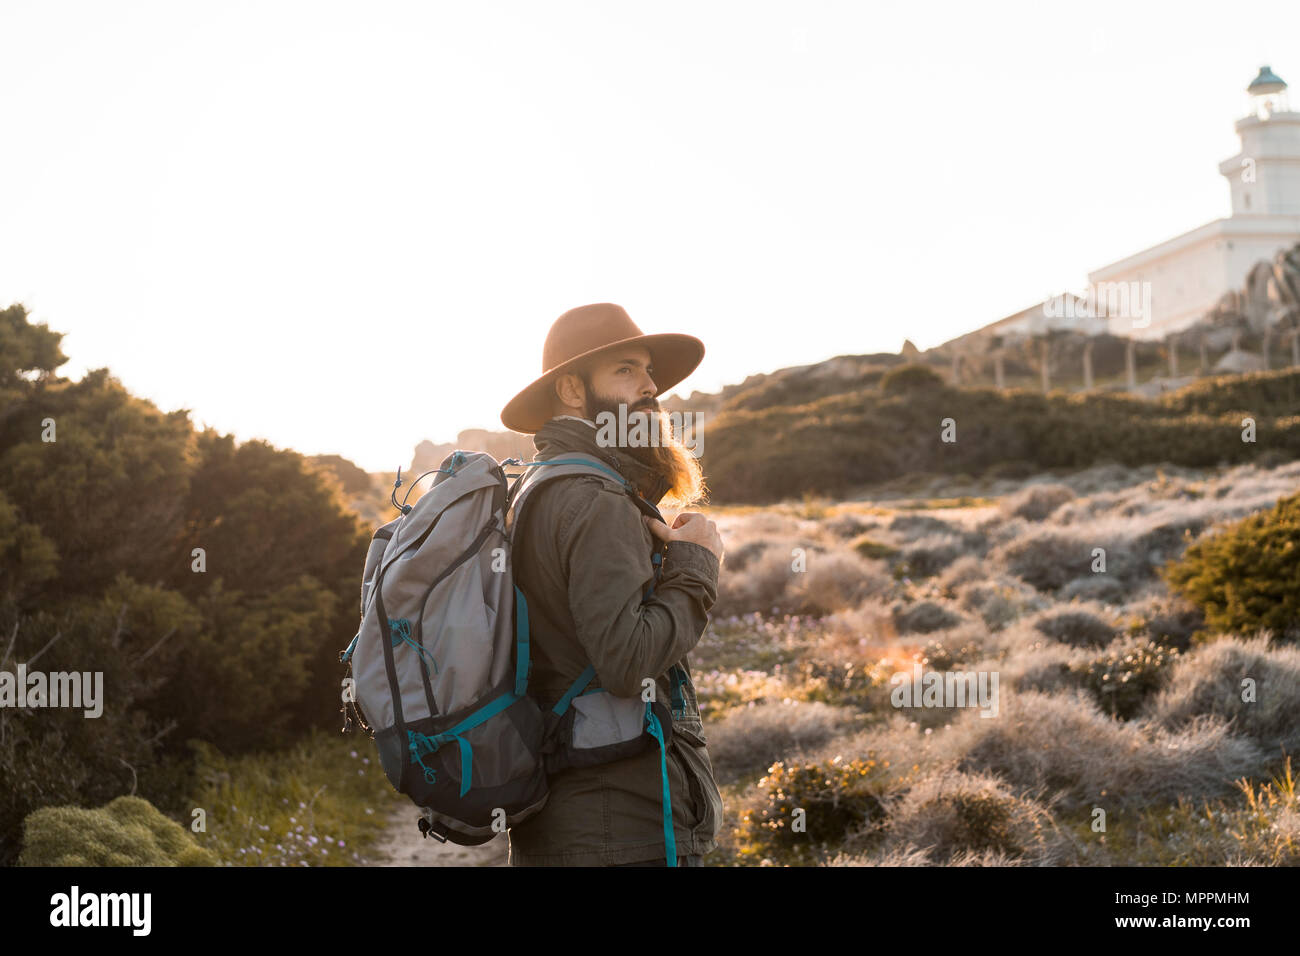 Italy, Sardinia, hiker with hat and backpack watching something - Stock Image